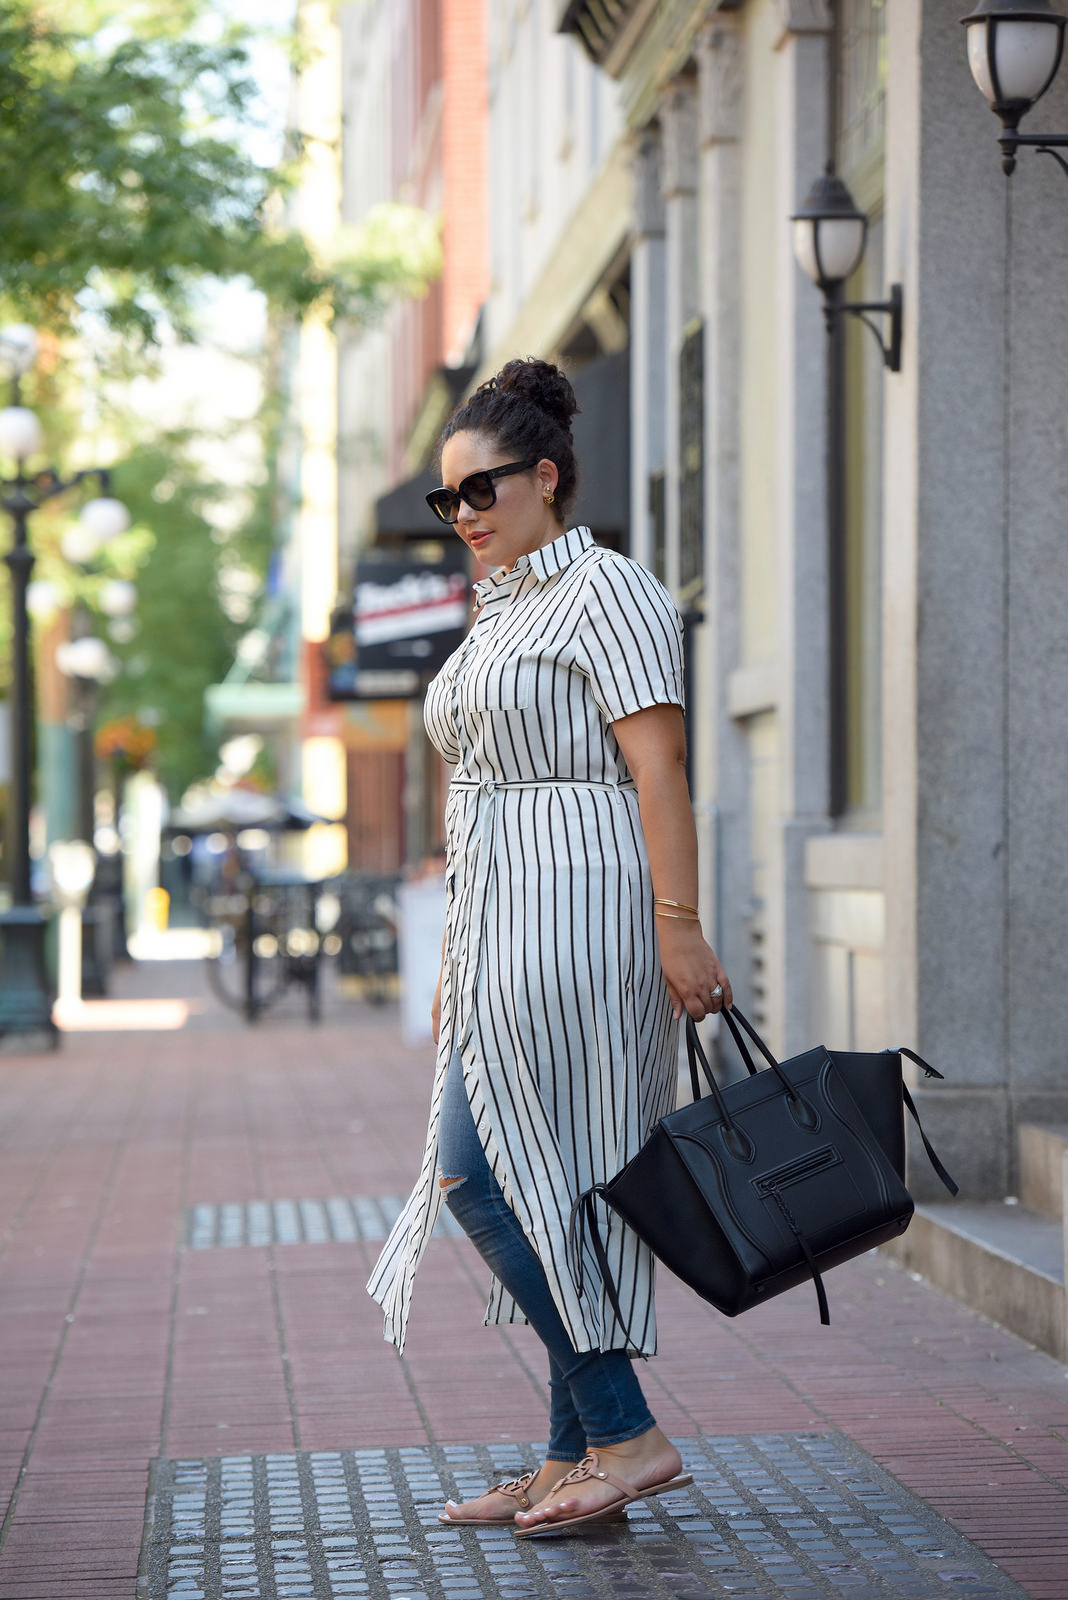 How To Build A Transitional Wardrobe Using Pieces You Already Have Via @GirlWithCurves #style #versatility #outfits #GirlWithCurves #GWCstyle 2